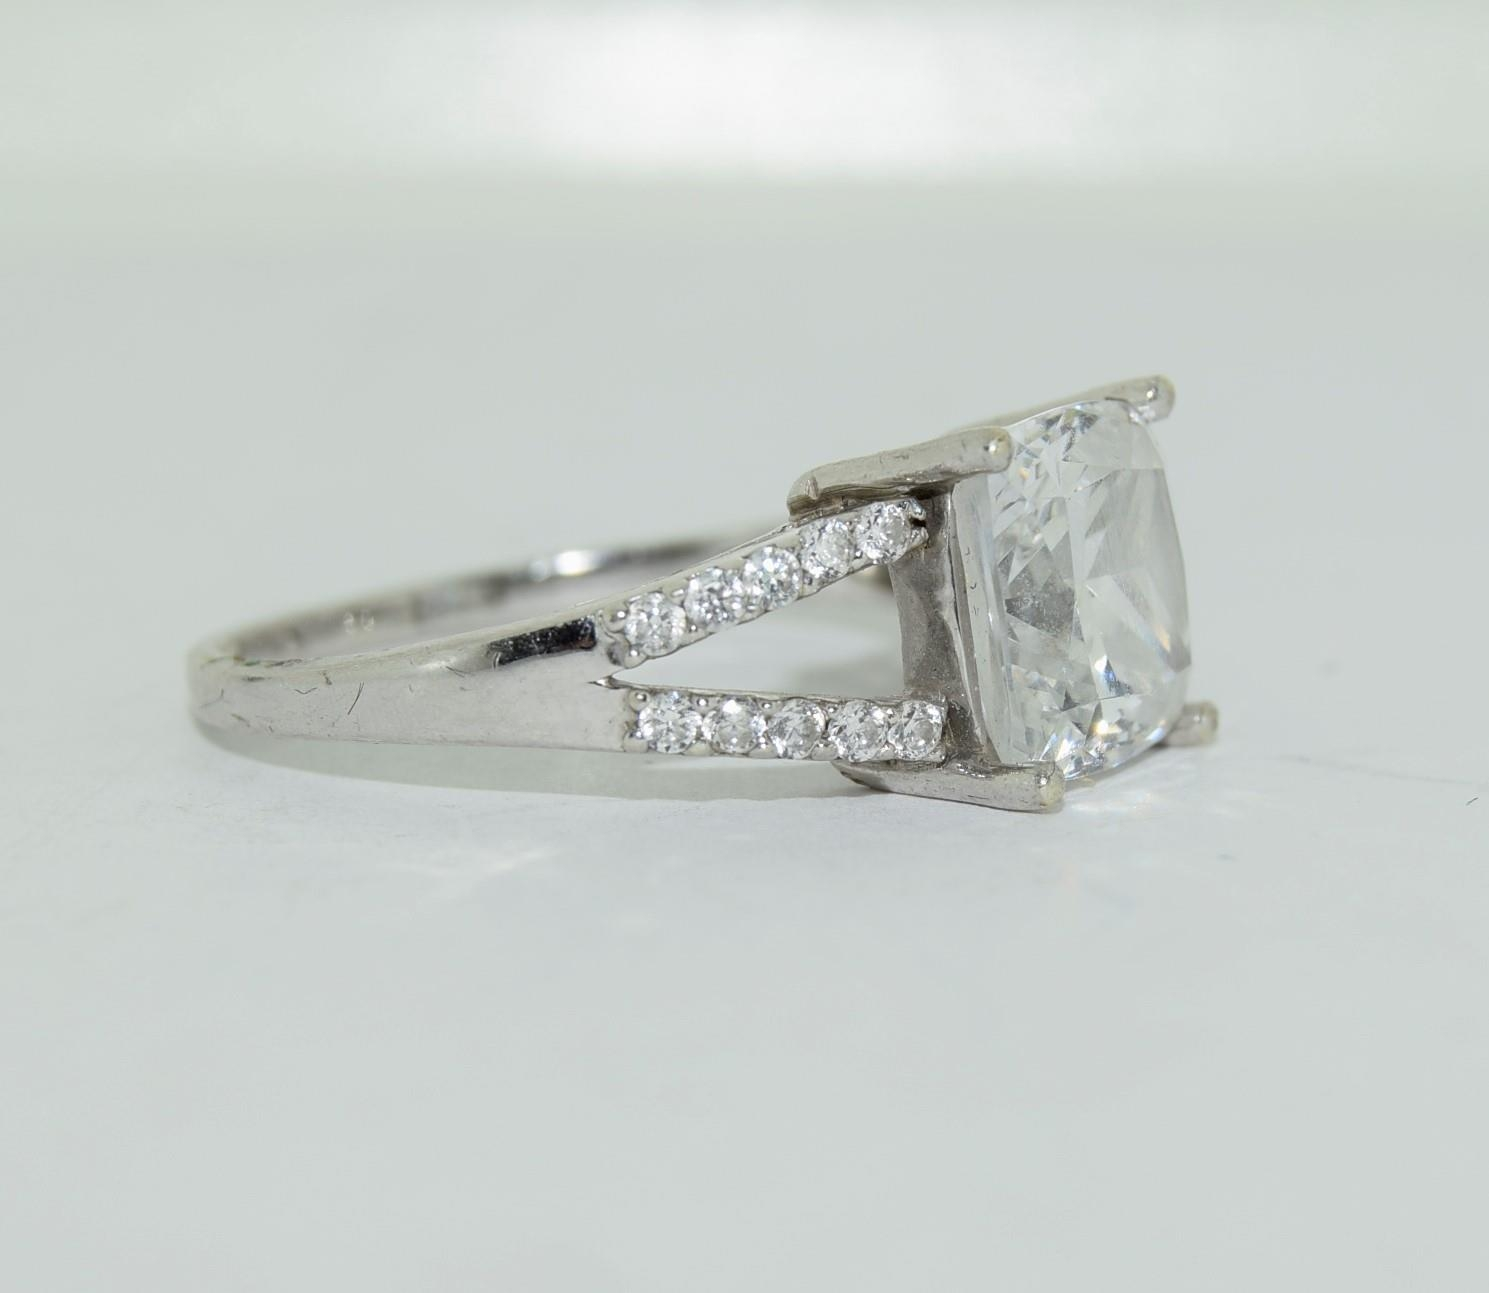 9ct white gold ladies square set solitare ring size R - Image 9 of 12